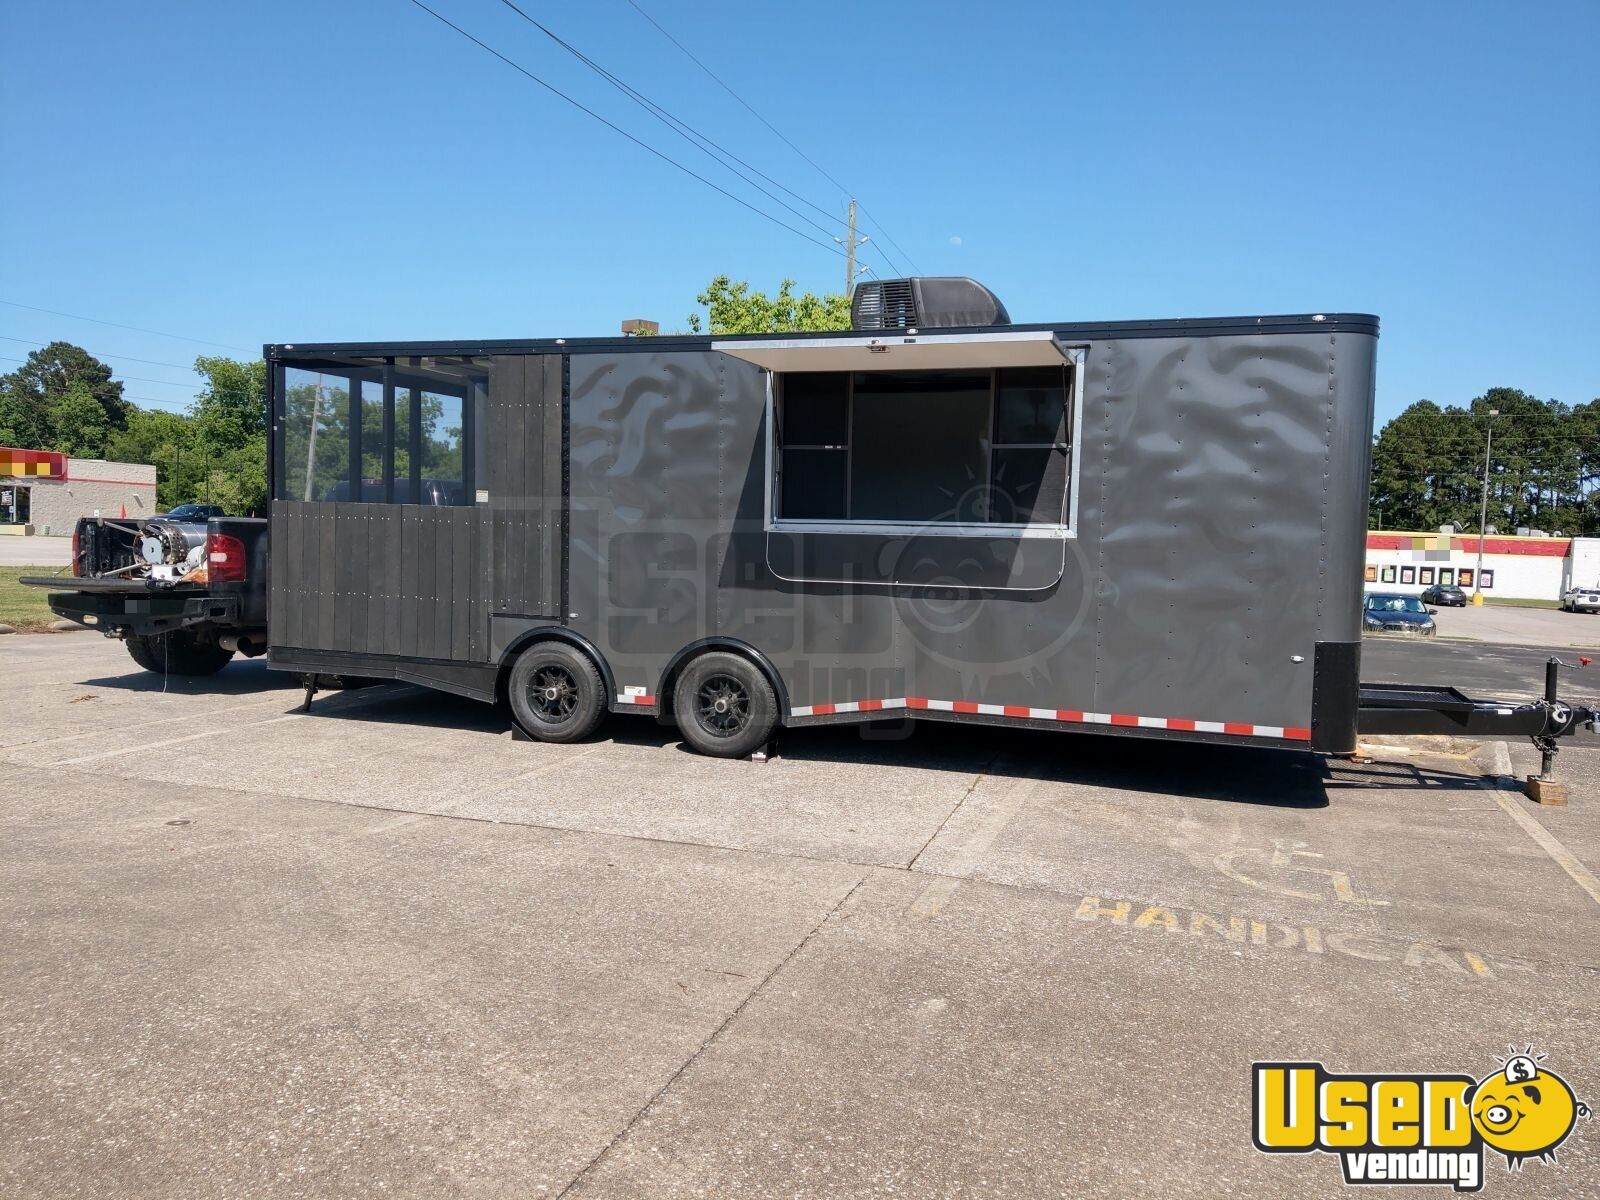 2019 Cargo Craft Concession Trailer Air Conditioning Louisiana for Sale - 2